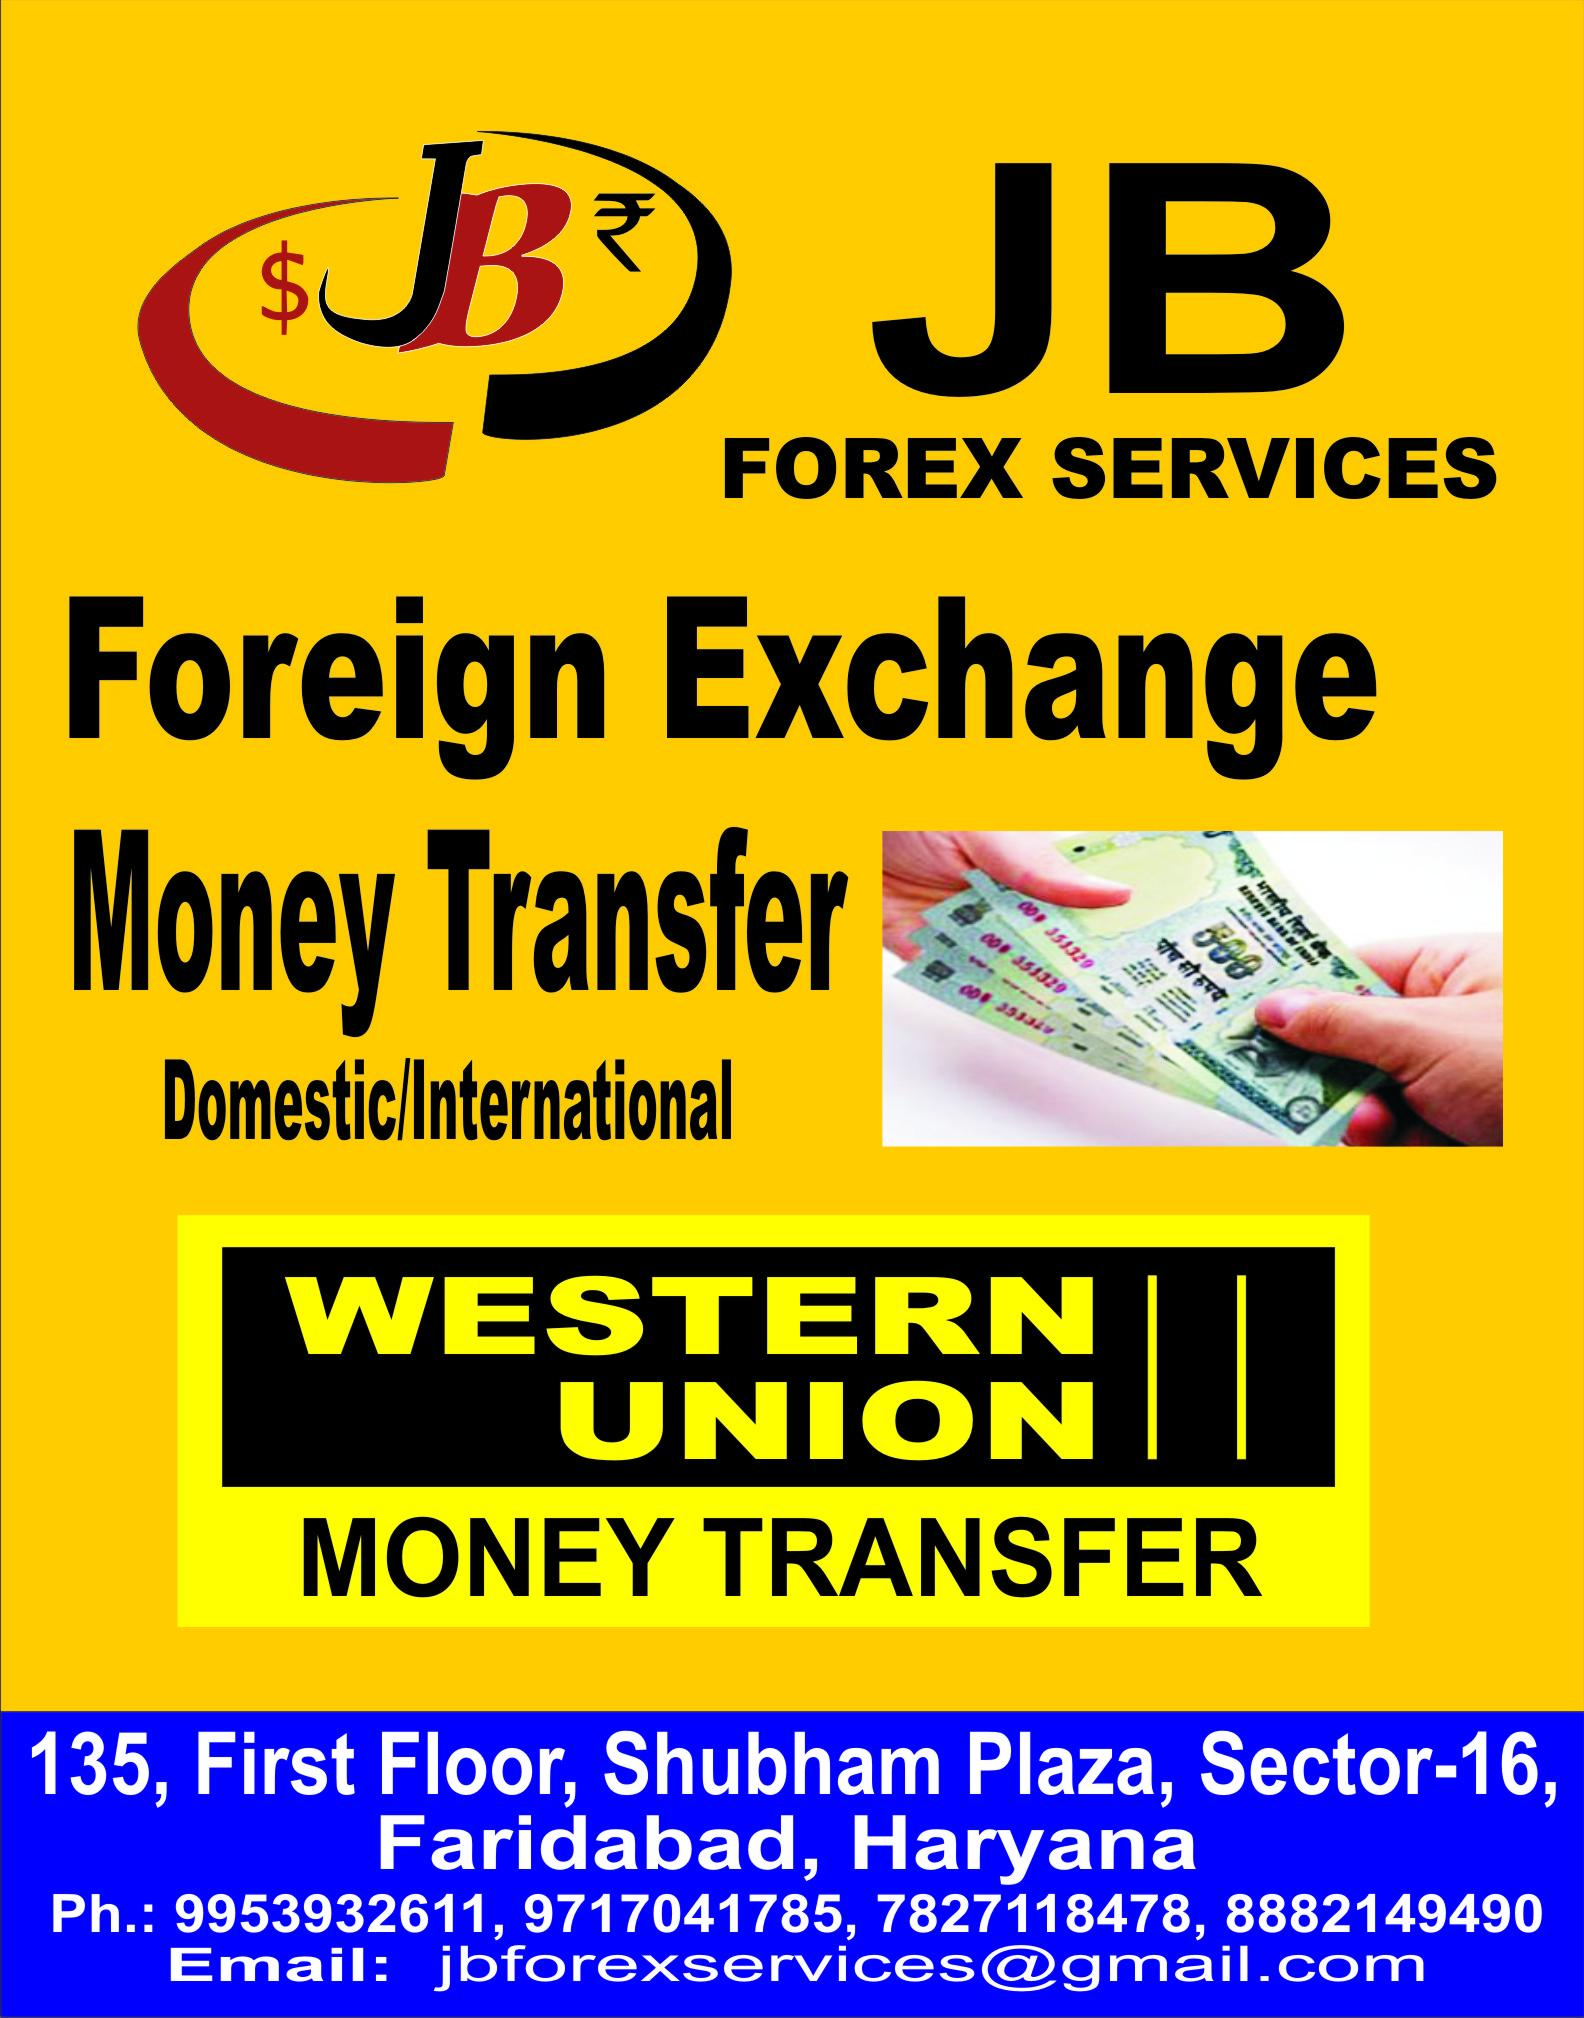 Forex international transfer